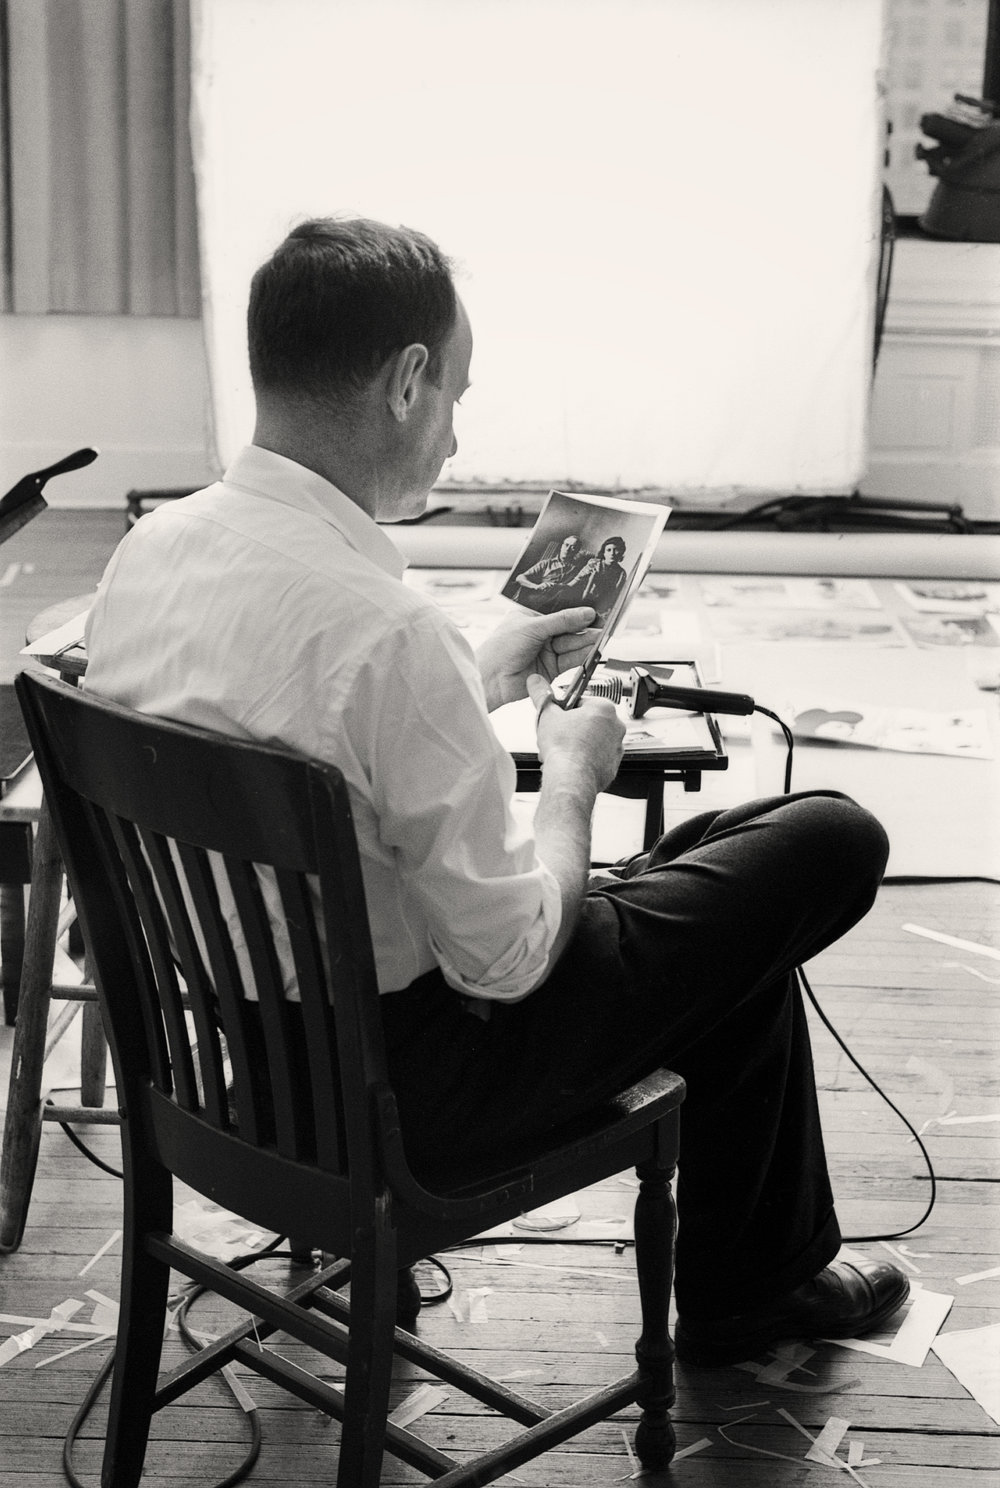 Robert Freson, Irving Penn preparing layouts for Moments Preserved, New York, 1959. Courtesy of Robert Freson